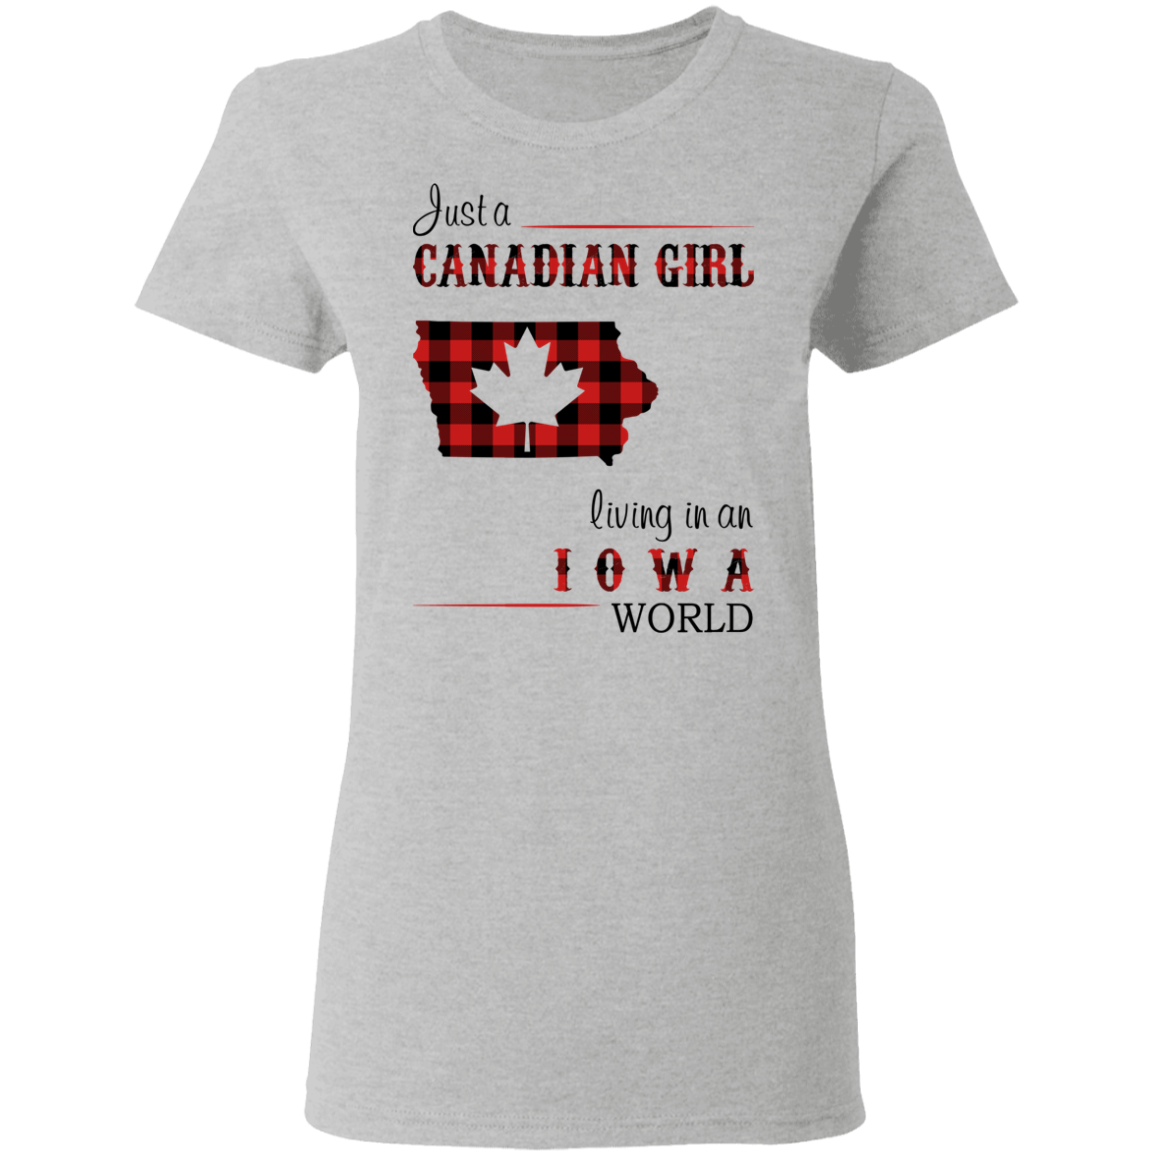 JUST A CANADIAN GIRL LIVING IN AN IOWA WORLD